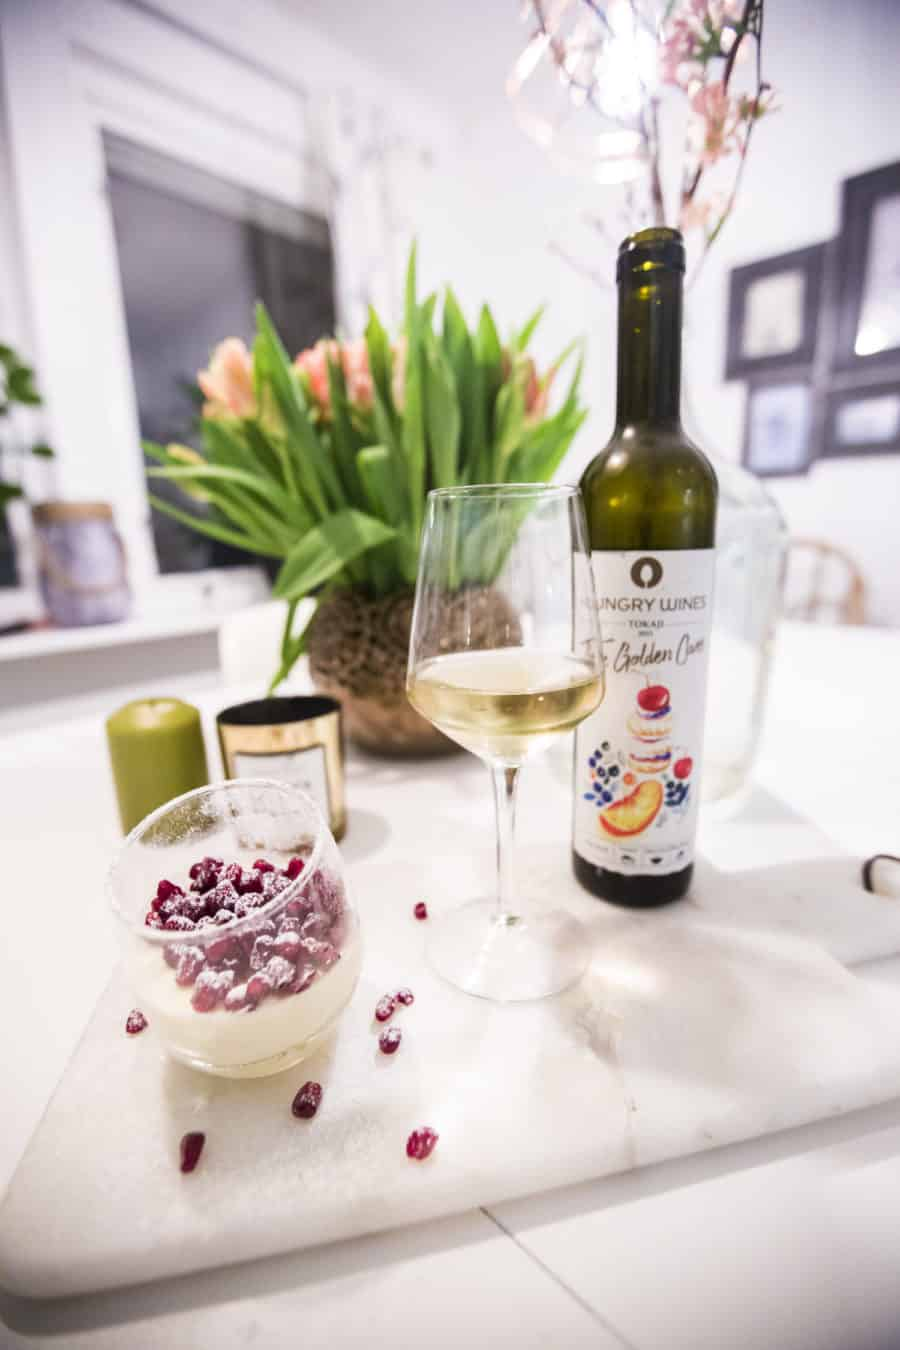 Hungry Wines The Golden Cuvée - Sweet wine from Tokaji on the base of Furmint and other local grapes, and pannacotta topped with berries